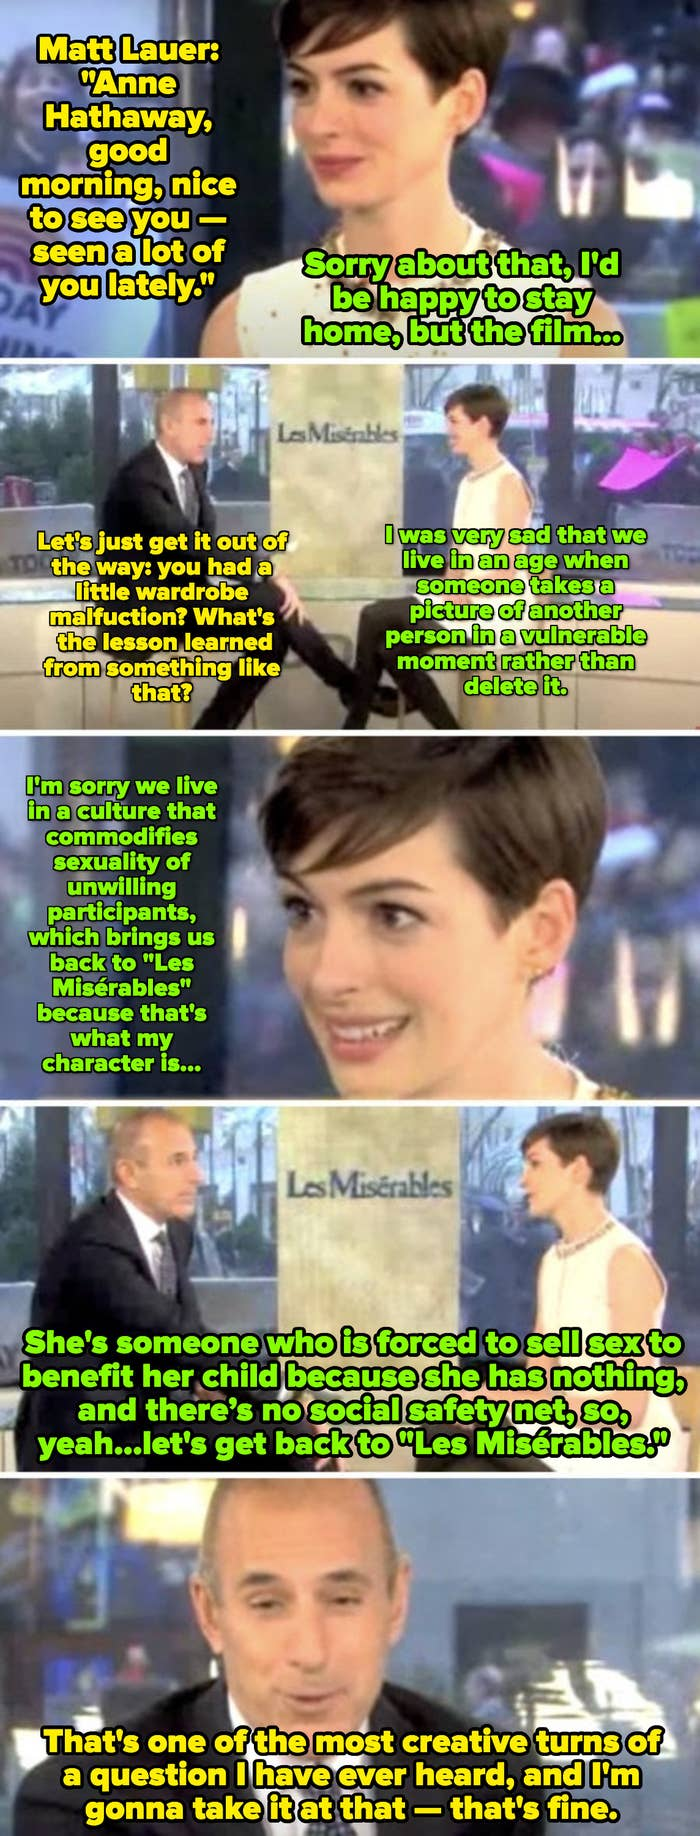 """Matt Lauer commenting on Anne Hathaway's paparazzi picture while she's visibly uncomfortable and trying to talk about her movie, """"Les Misérables"""""""